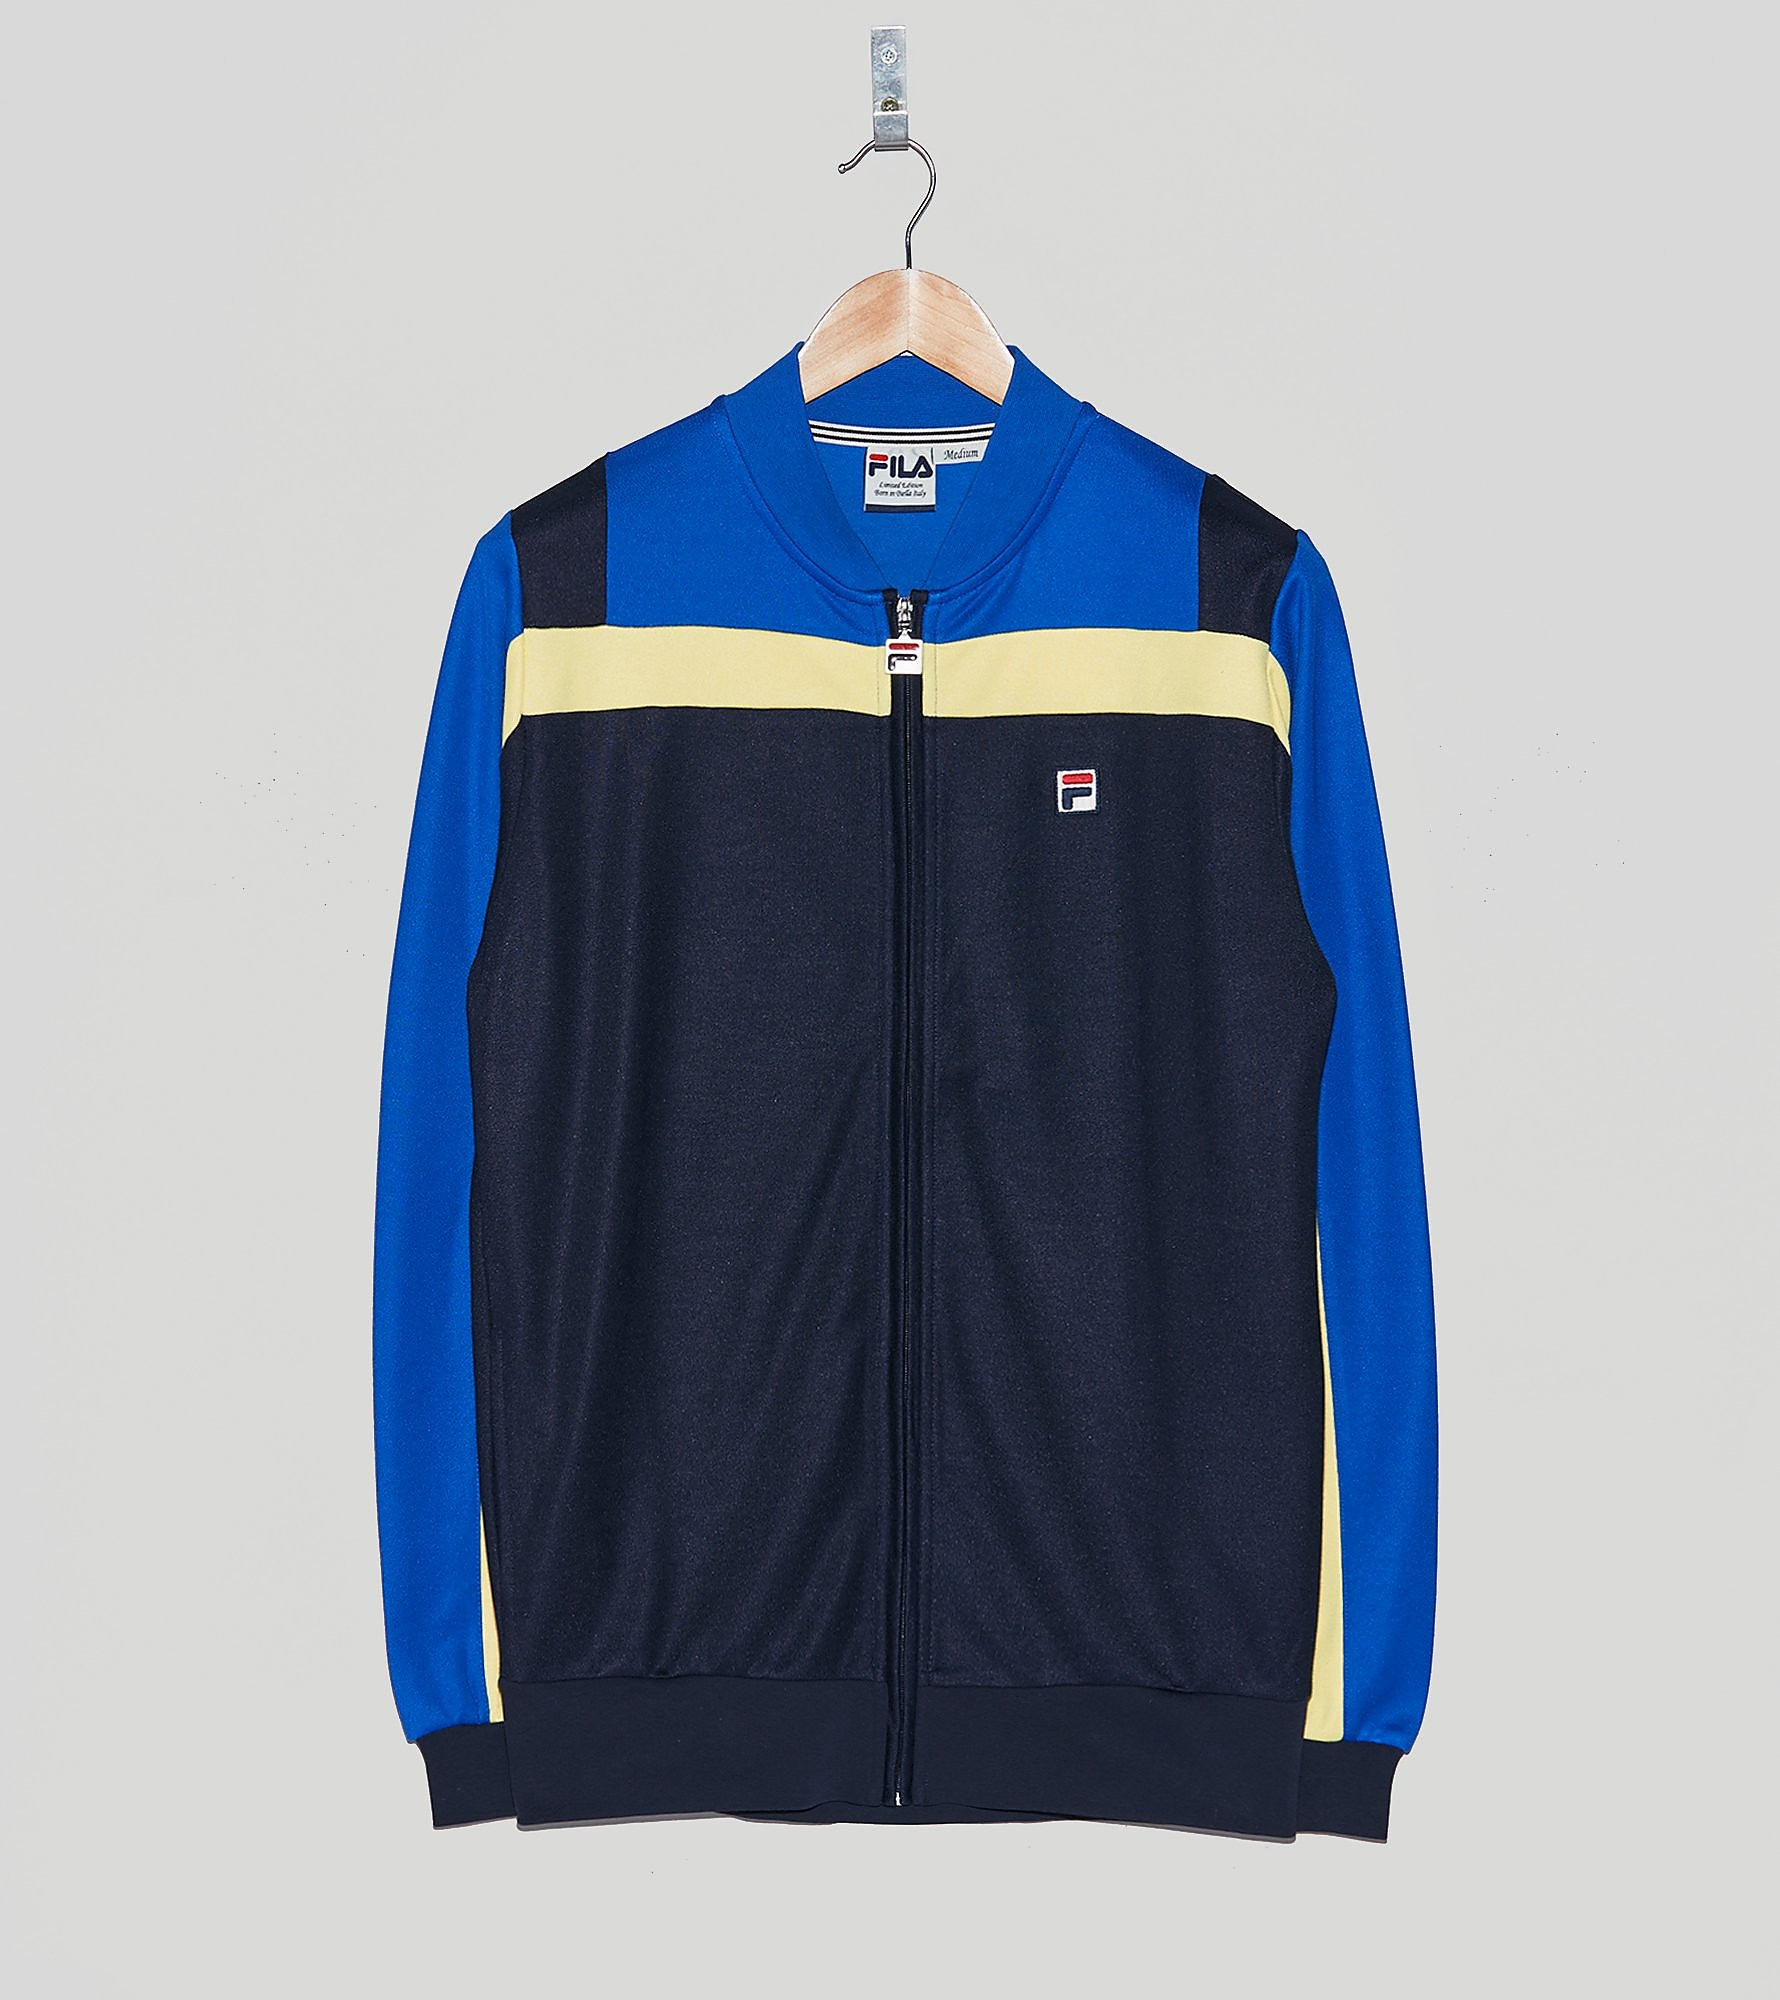 Fila Baseline Track Top - size? Exclusive